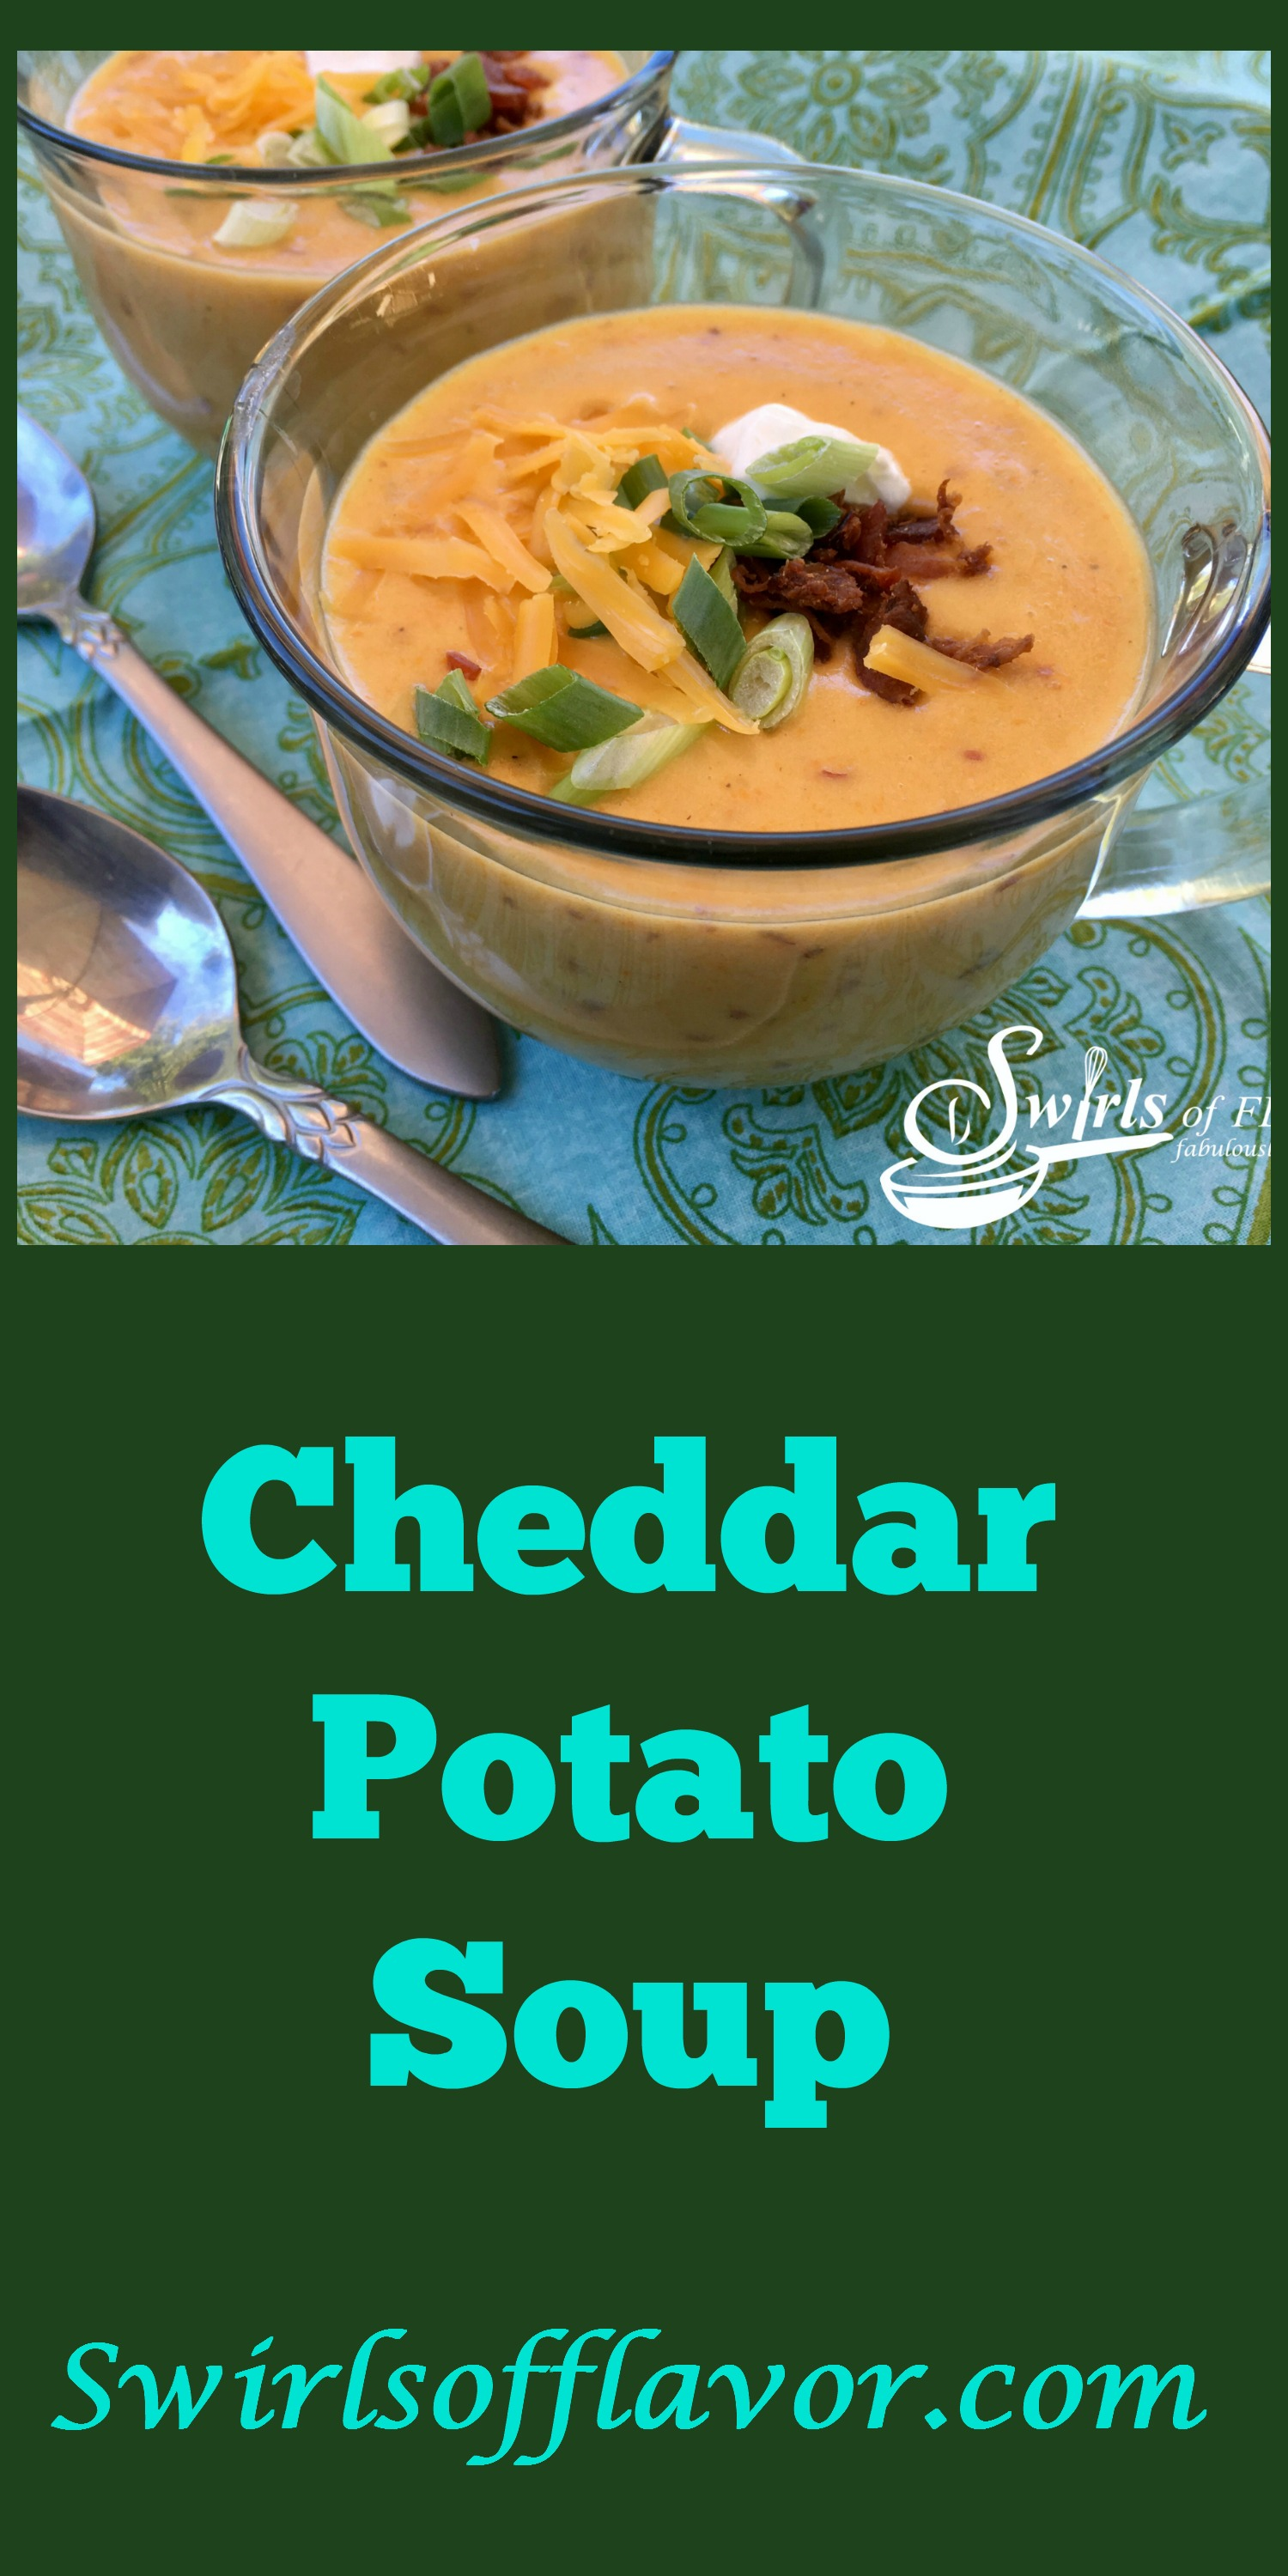 Cheddar Potato Soup is a homemade soup that's creamy, silky and cheesy with a hint of bacon and a quick and easy recipe to make for dinner! Brimming with fresh vegetables, this homemade soup will be a welcome addition to your weeknight menu. #potato #potatosoup #homemadesoup #soup #cheddarsoup #freshvegetables #easyrecipe #weeknightrecipe #creamysoup #bacon #swirlsofflavor